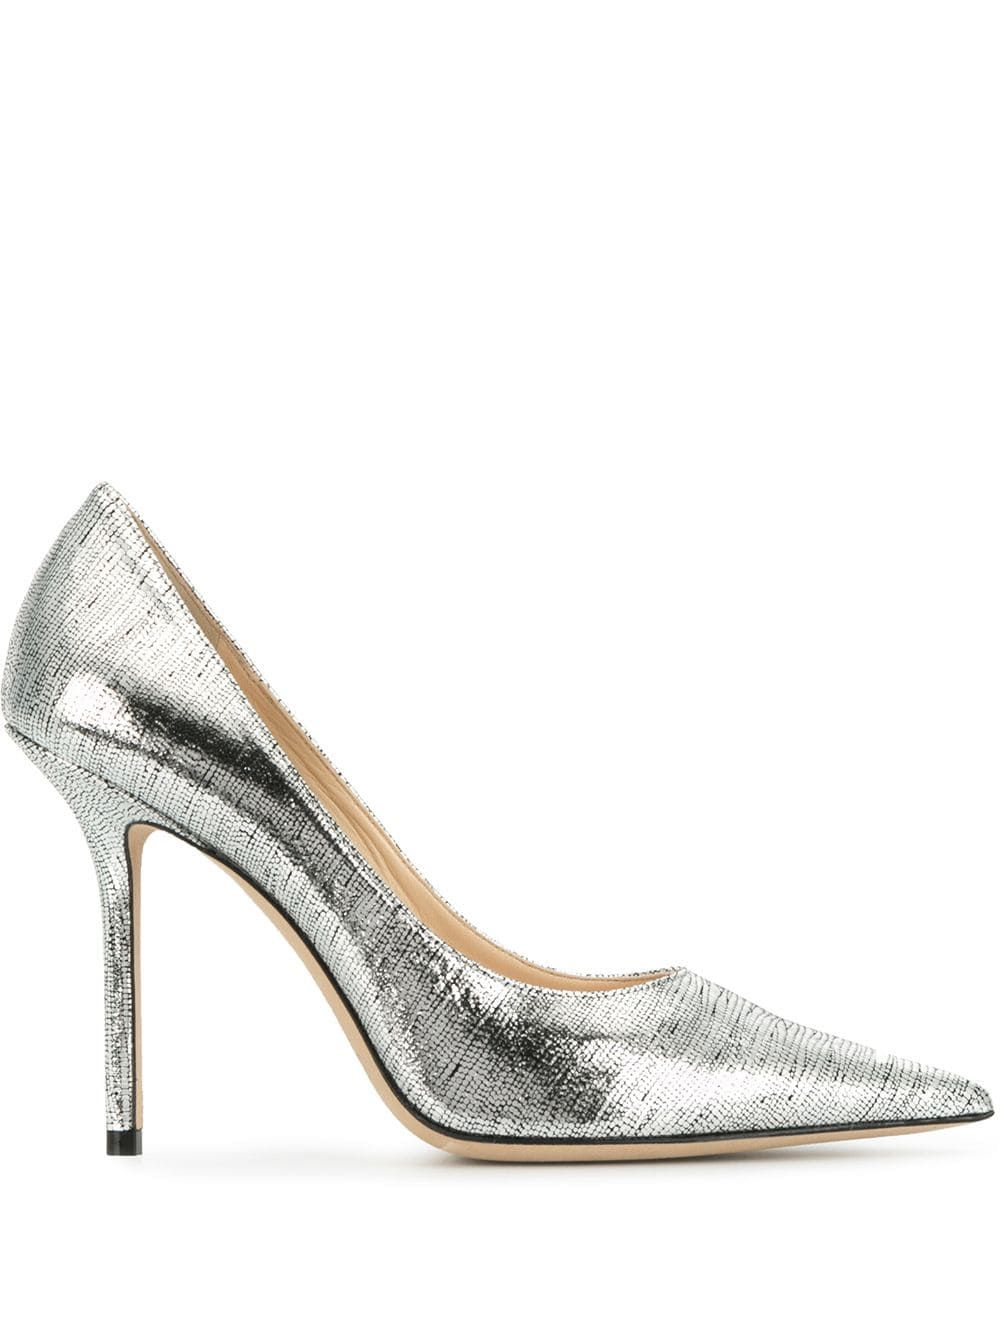 Love Pumps Choo 100 Jimmy 2019Products Silver In 0wm8NnOyv